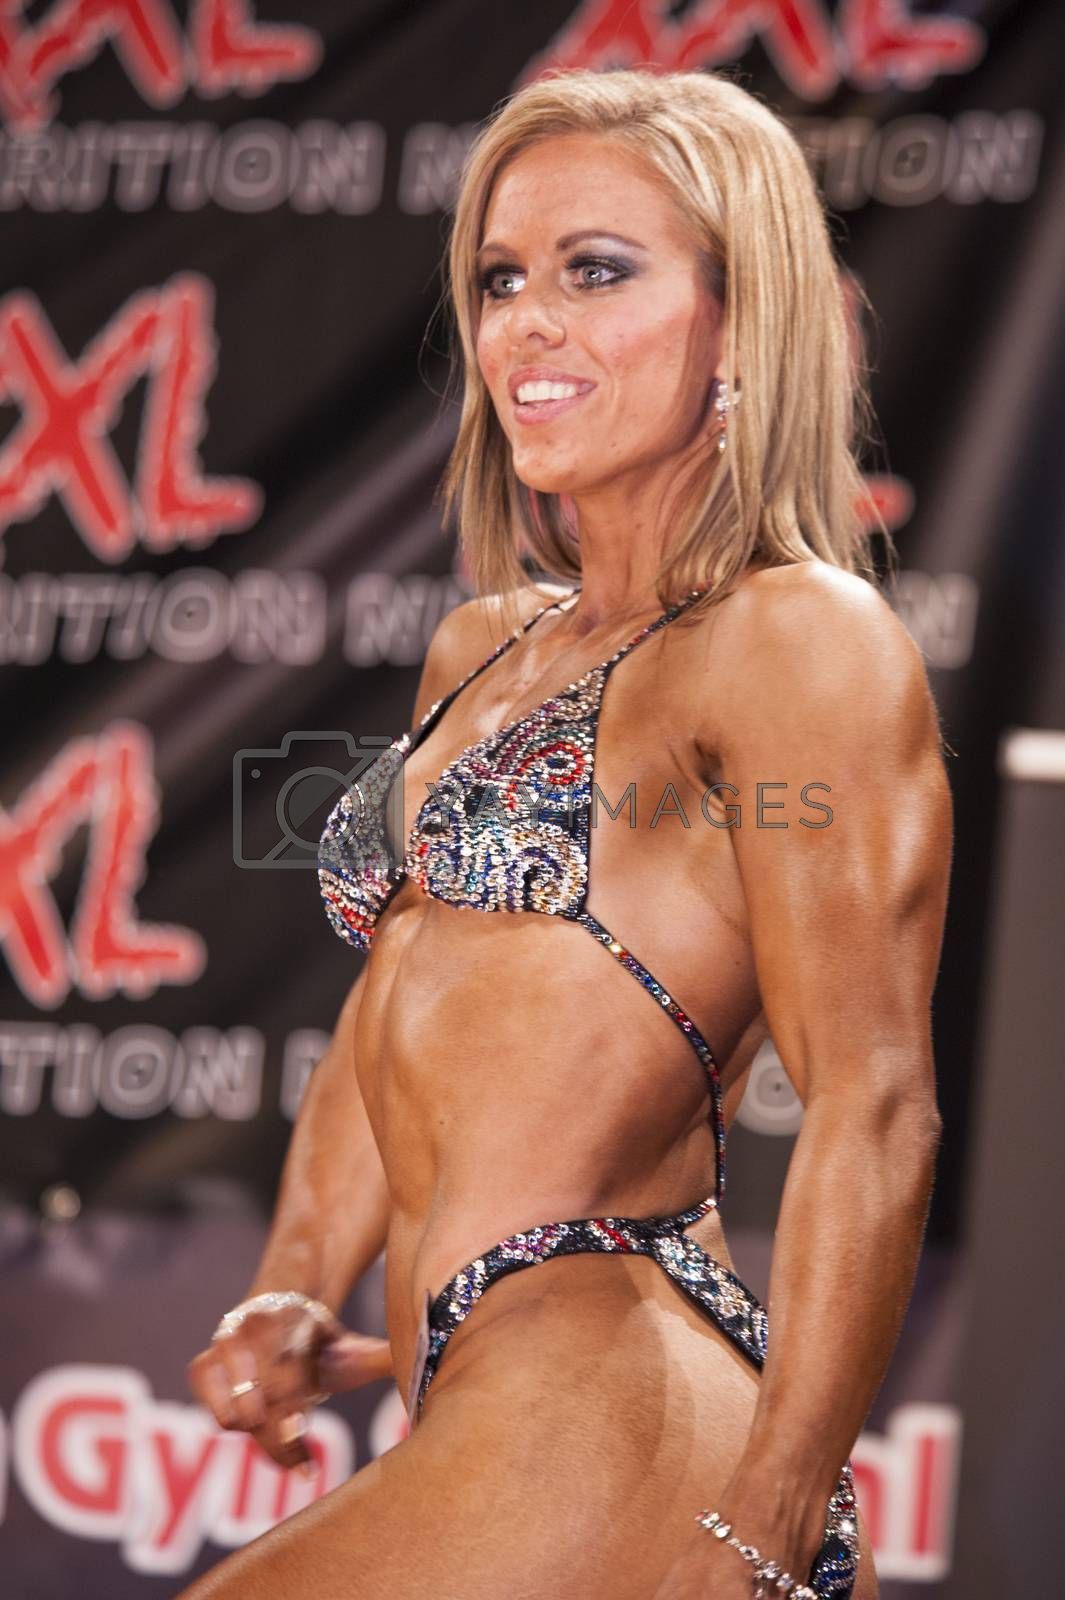 Female bodyfitness contestant shows het best front pose on stage by yellowpaul